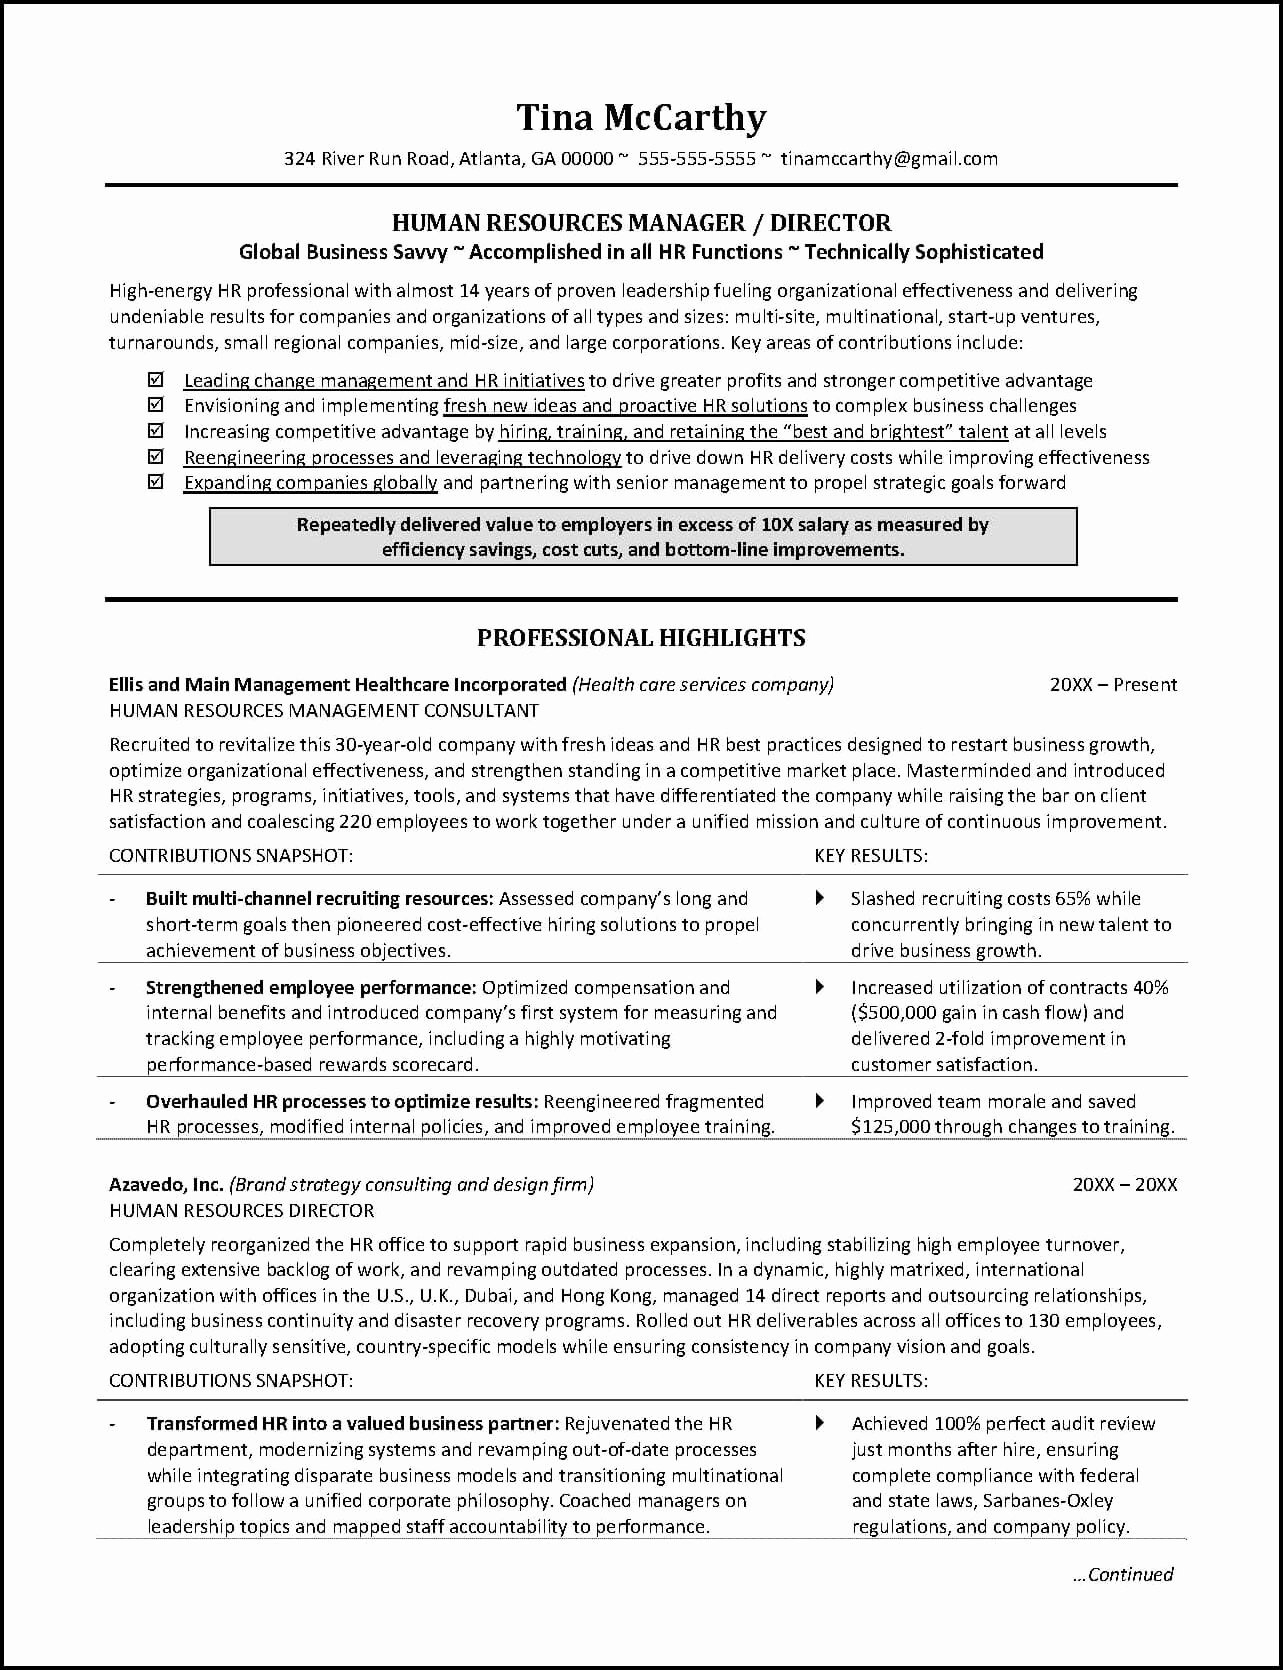 Human Resource Resume Template Luxury Powerful Human Resources Resume Example